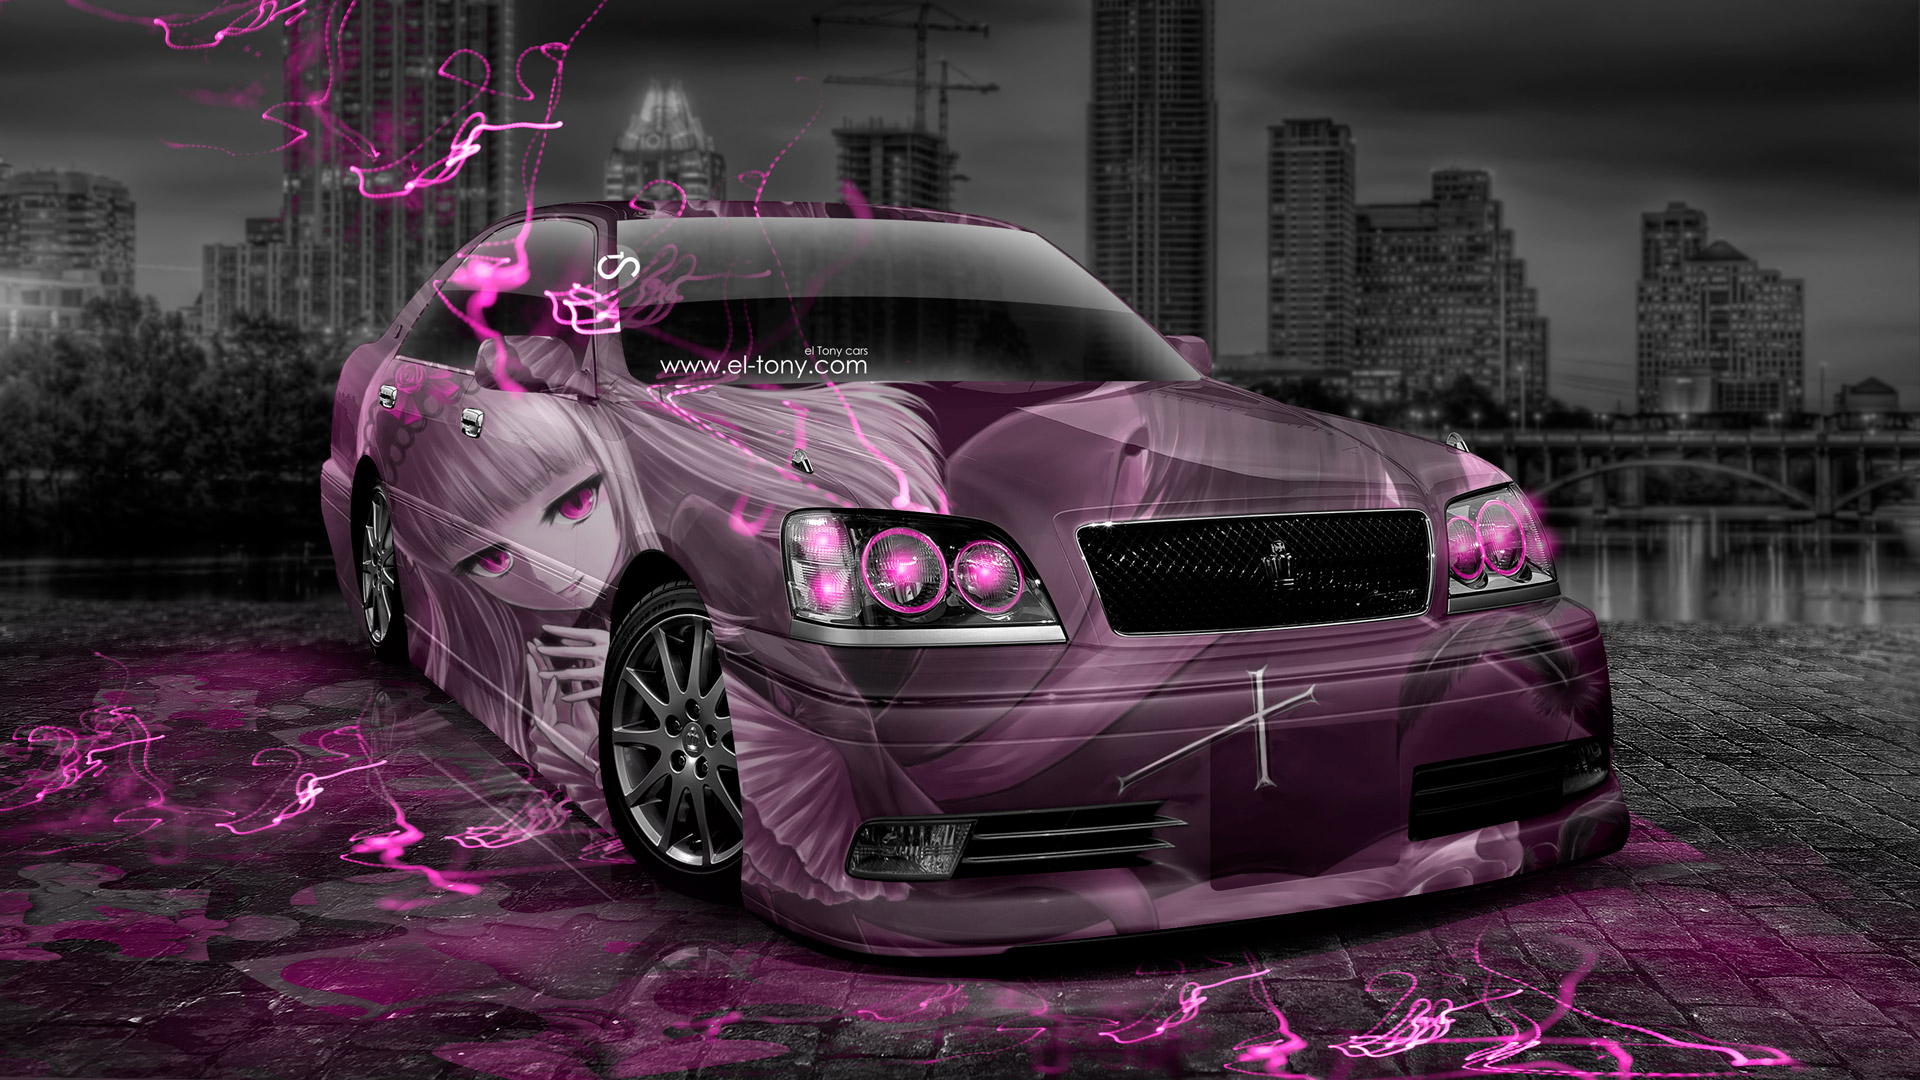 Toyota-Crown-Athlete-JDM-Anime-Girl-Aerography-City-Car-2014-Pink-Neon-Effects-HD-Wallpapers-design-by-Tony-Kokhan-[www.el-tony.com]